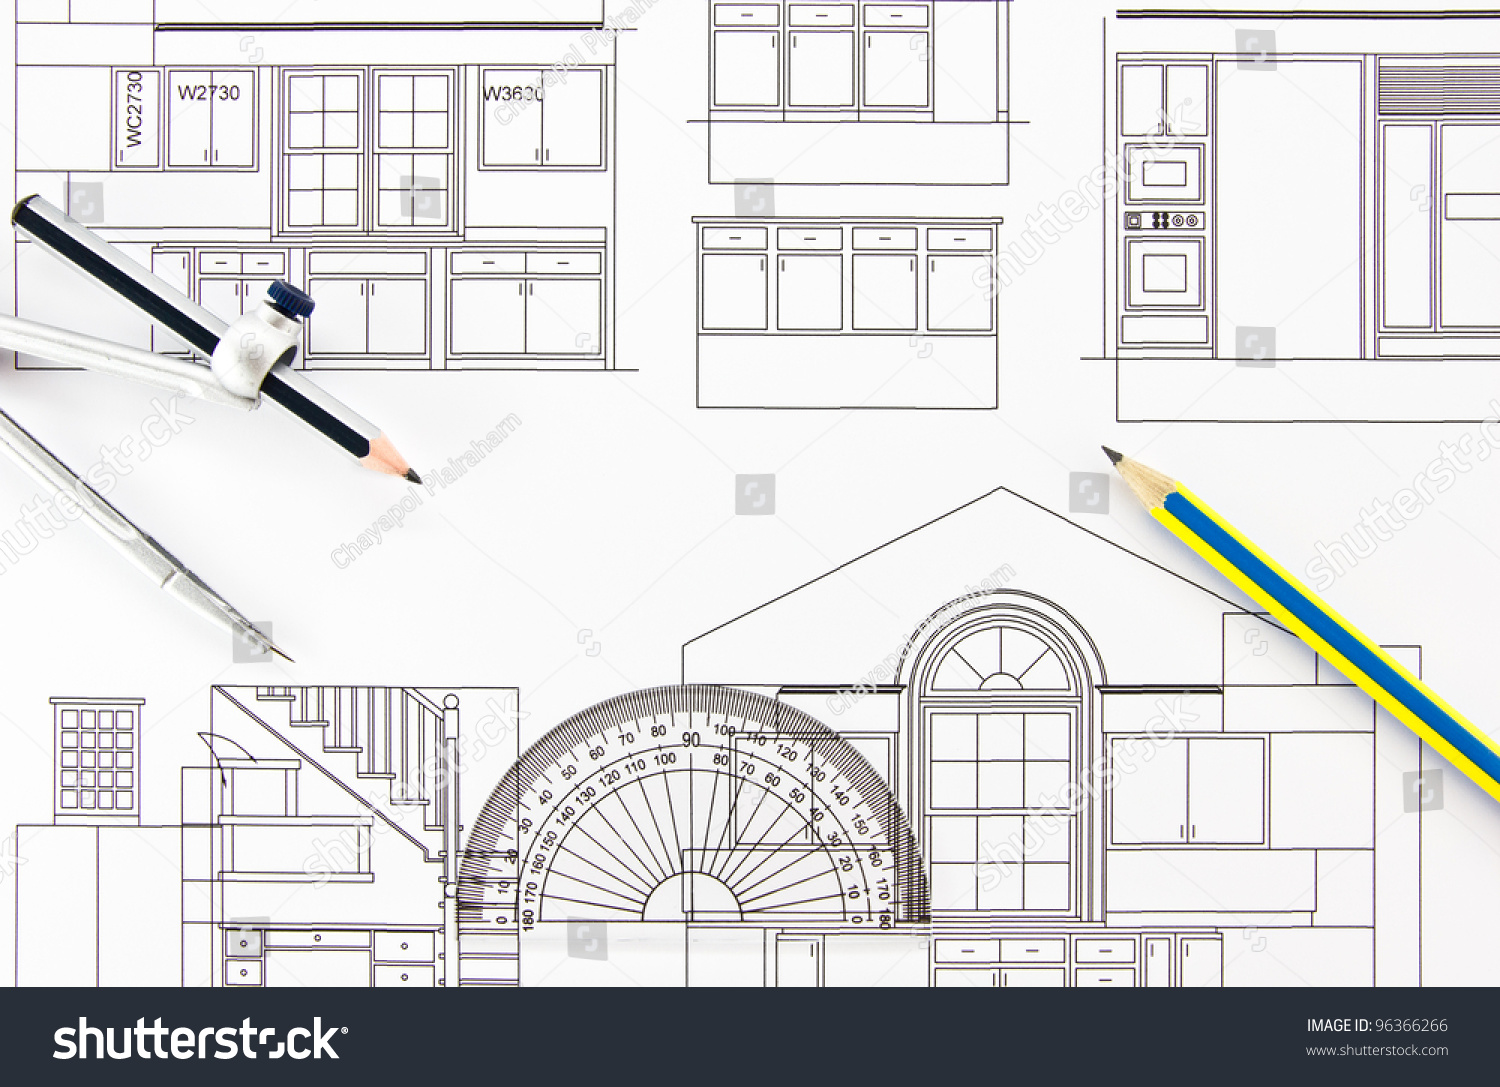 Architecture Drawing Instruments architecture home draw drawing instruments stock photo 96366266